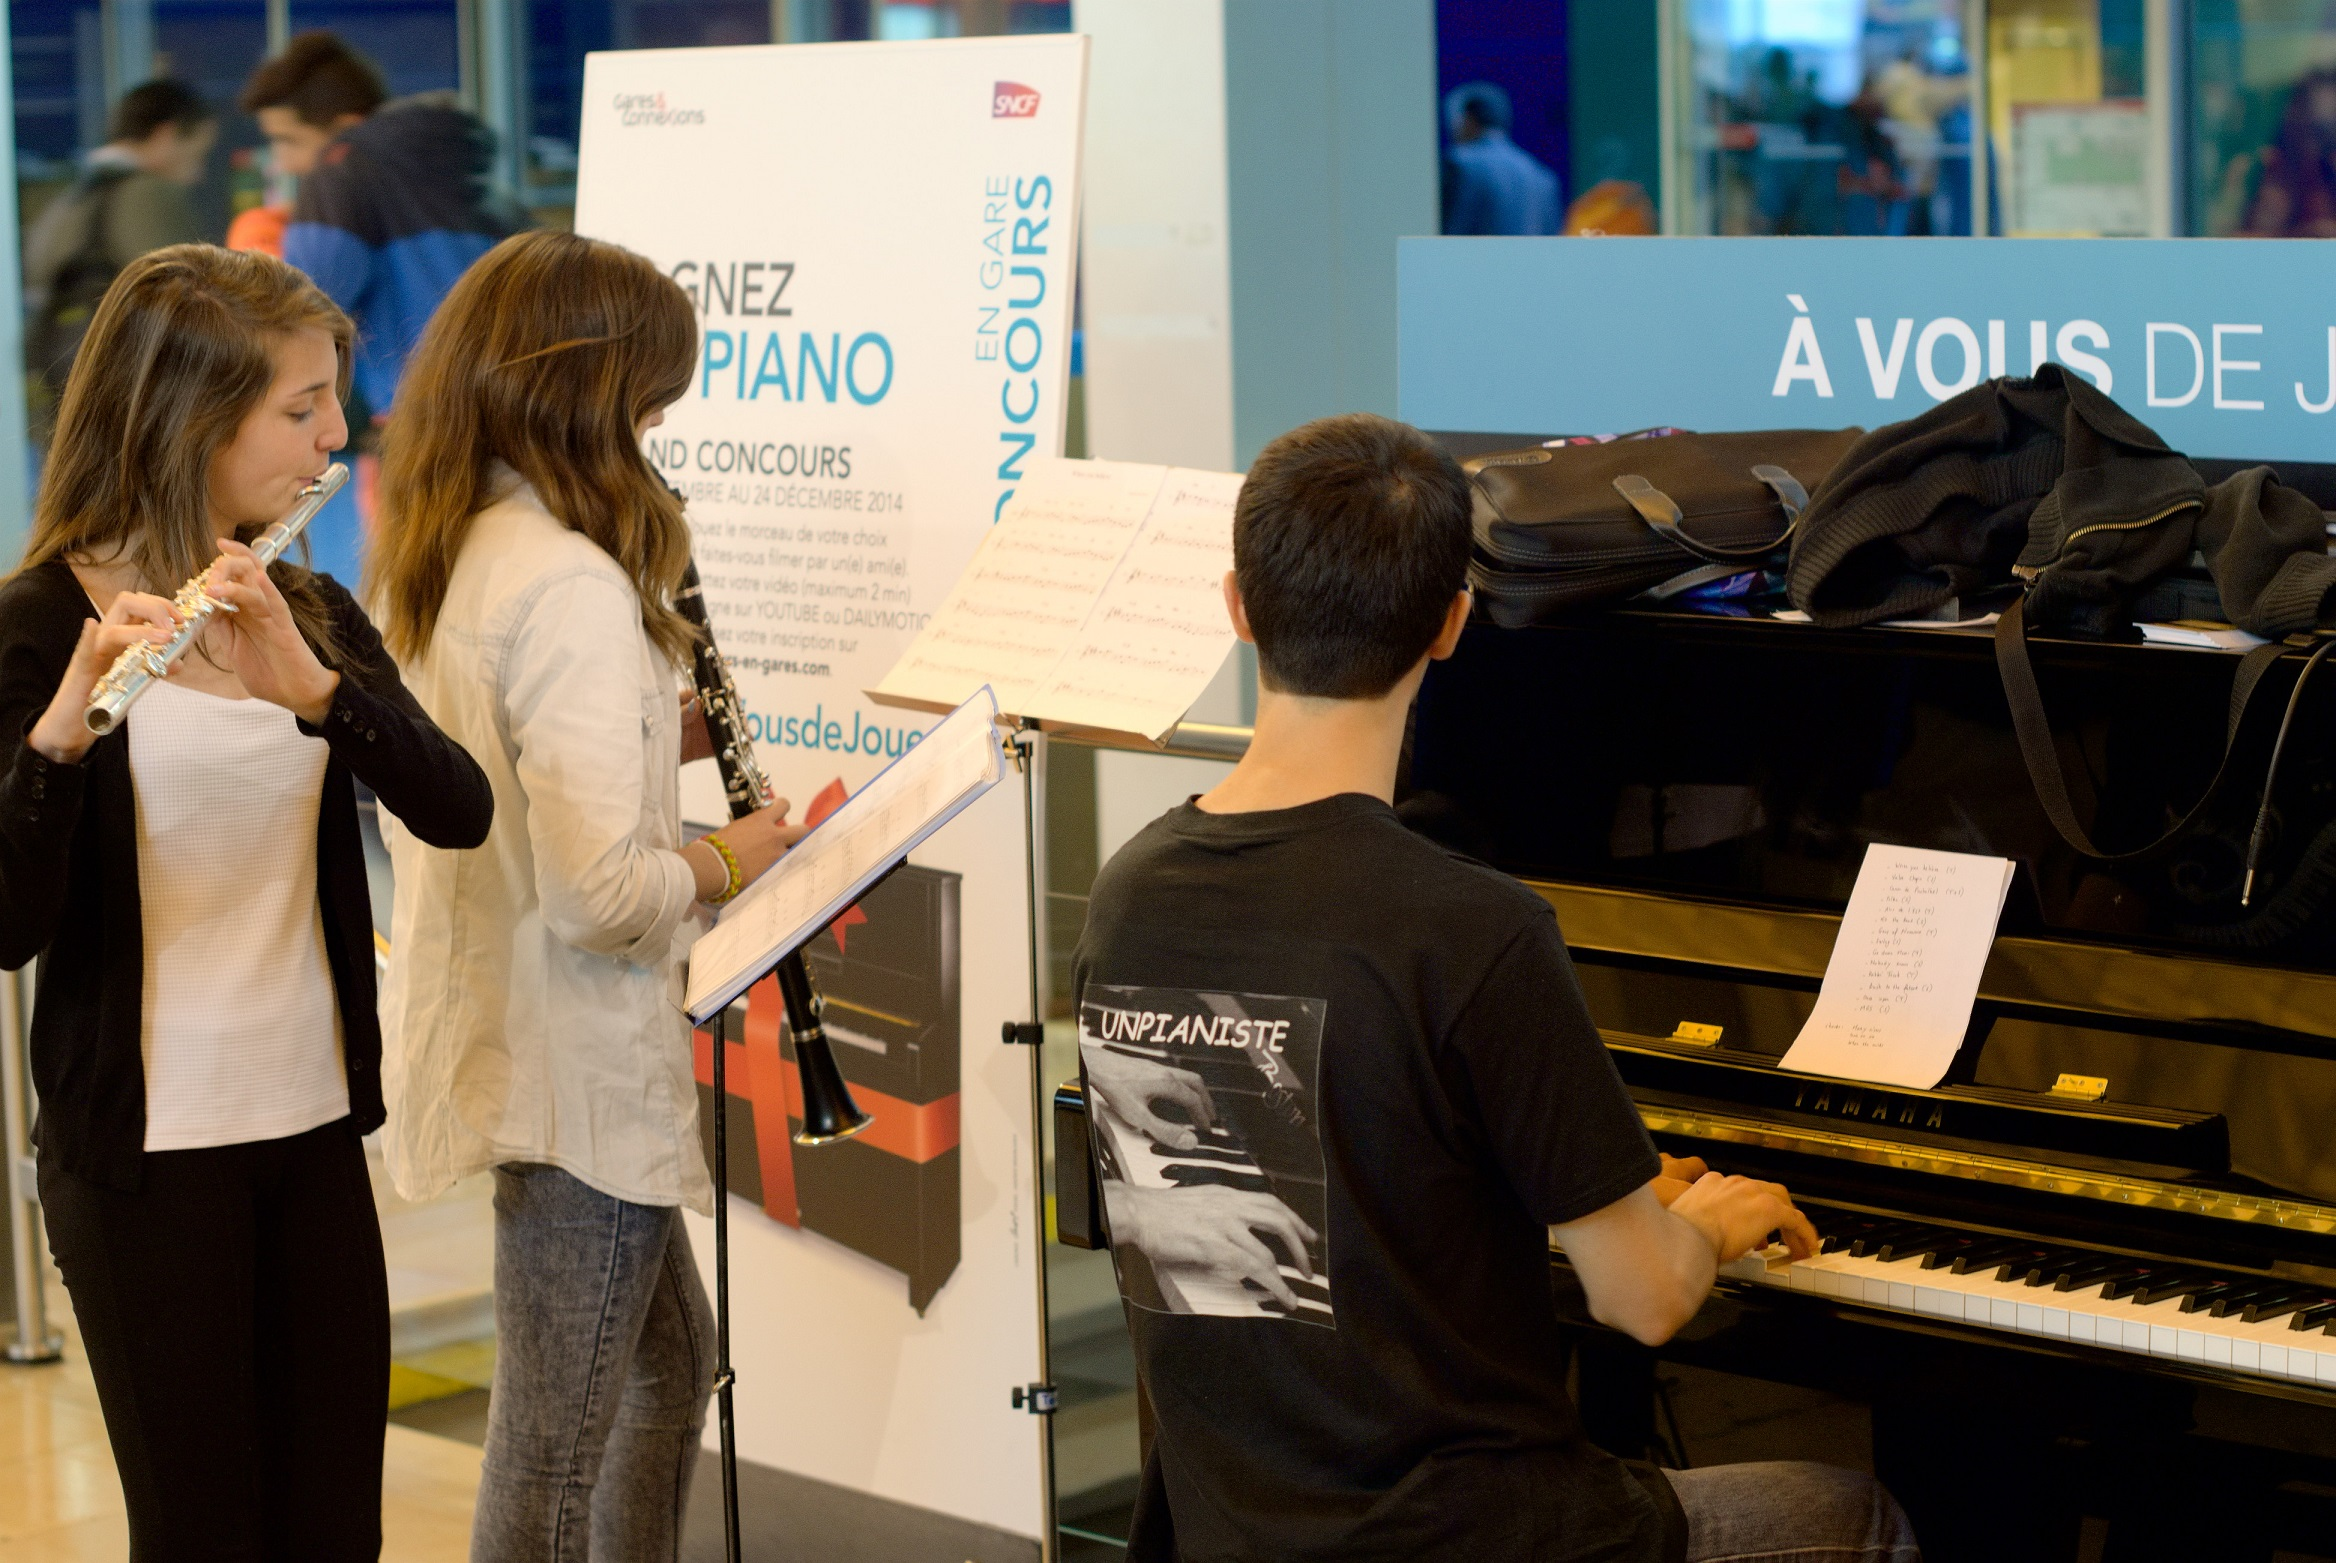 piano flute clarinette concert gare projet musical